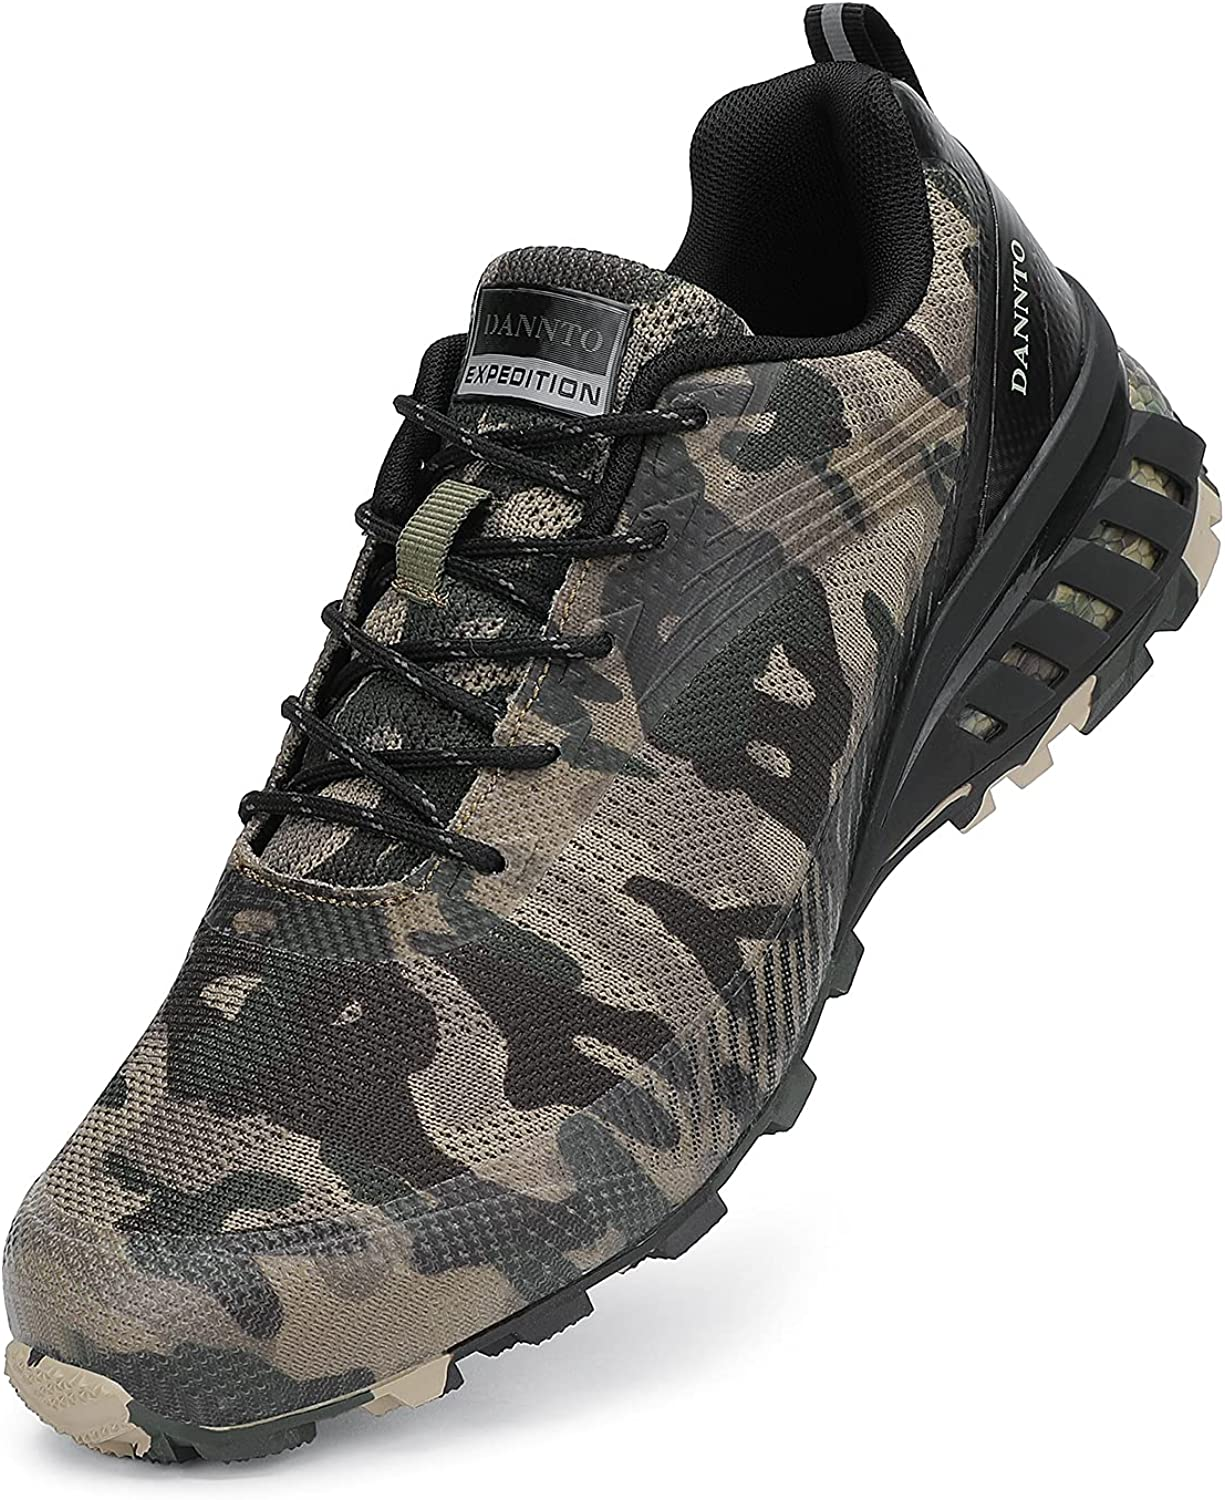 Dannto Very popular Men's Al sold out. Trail Running Shoes Sneakers Walking Outdoor Hiking